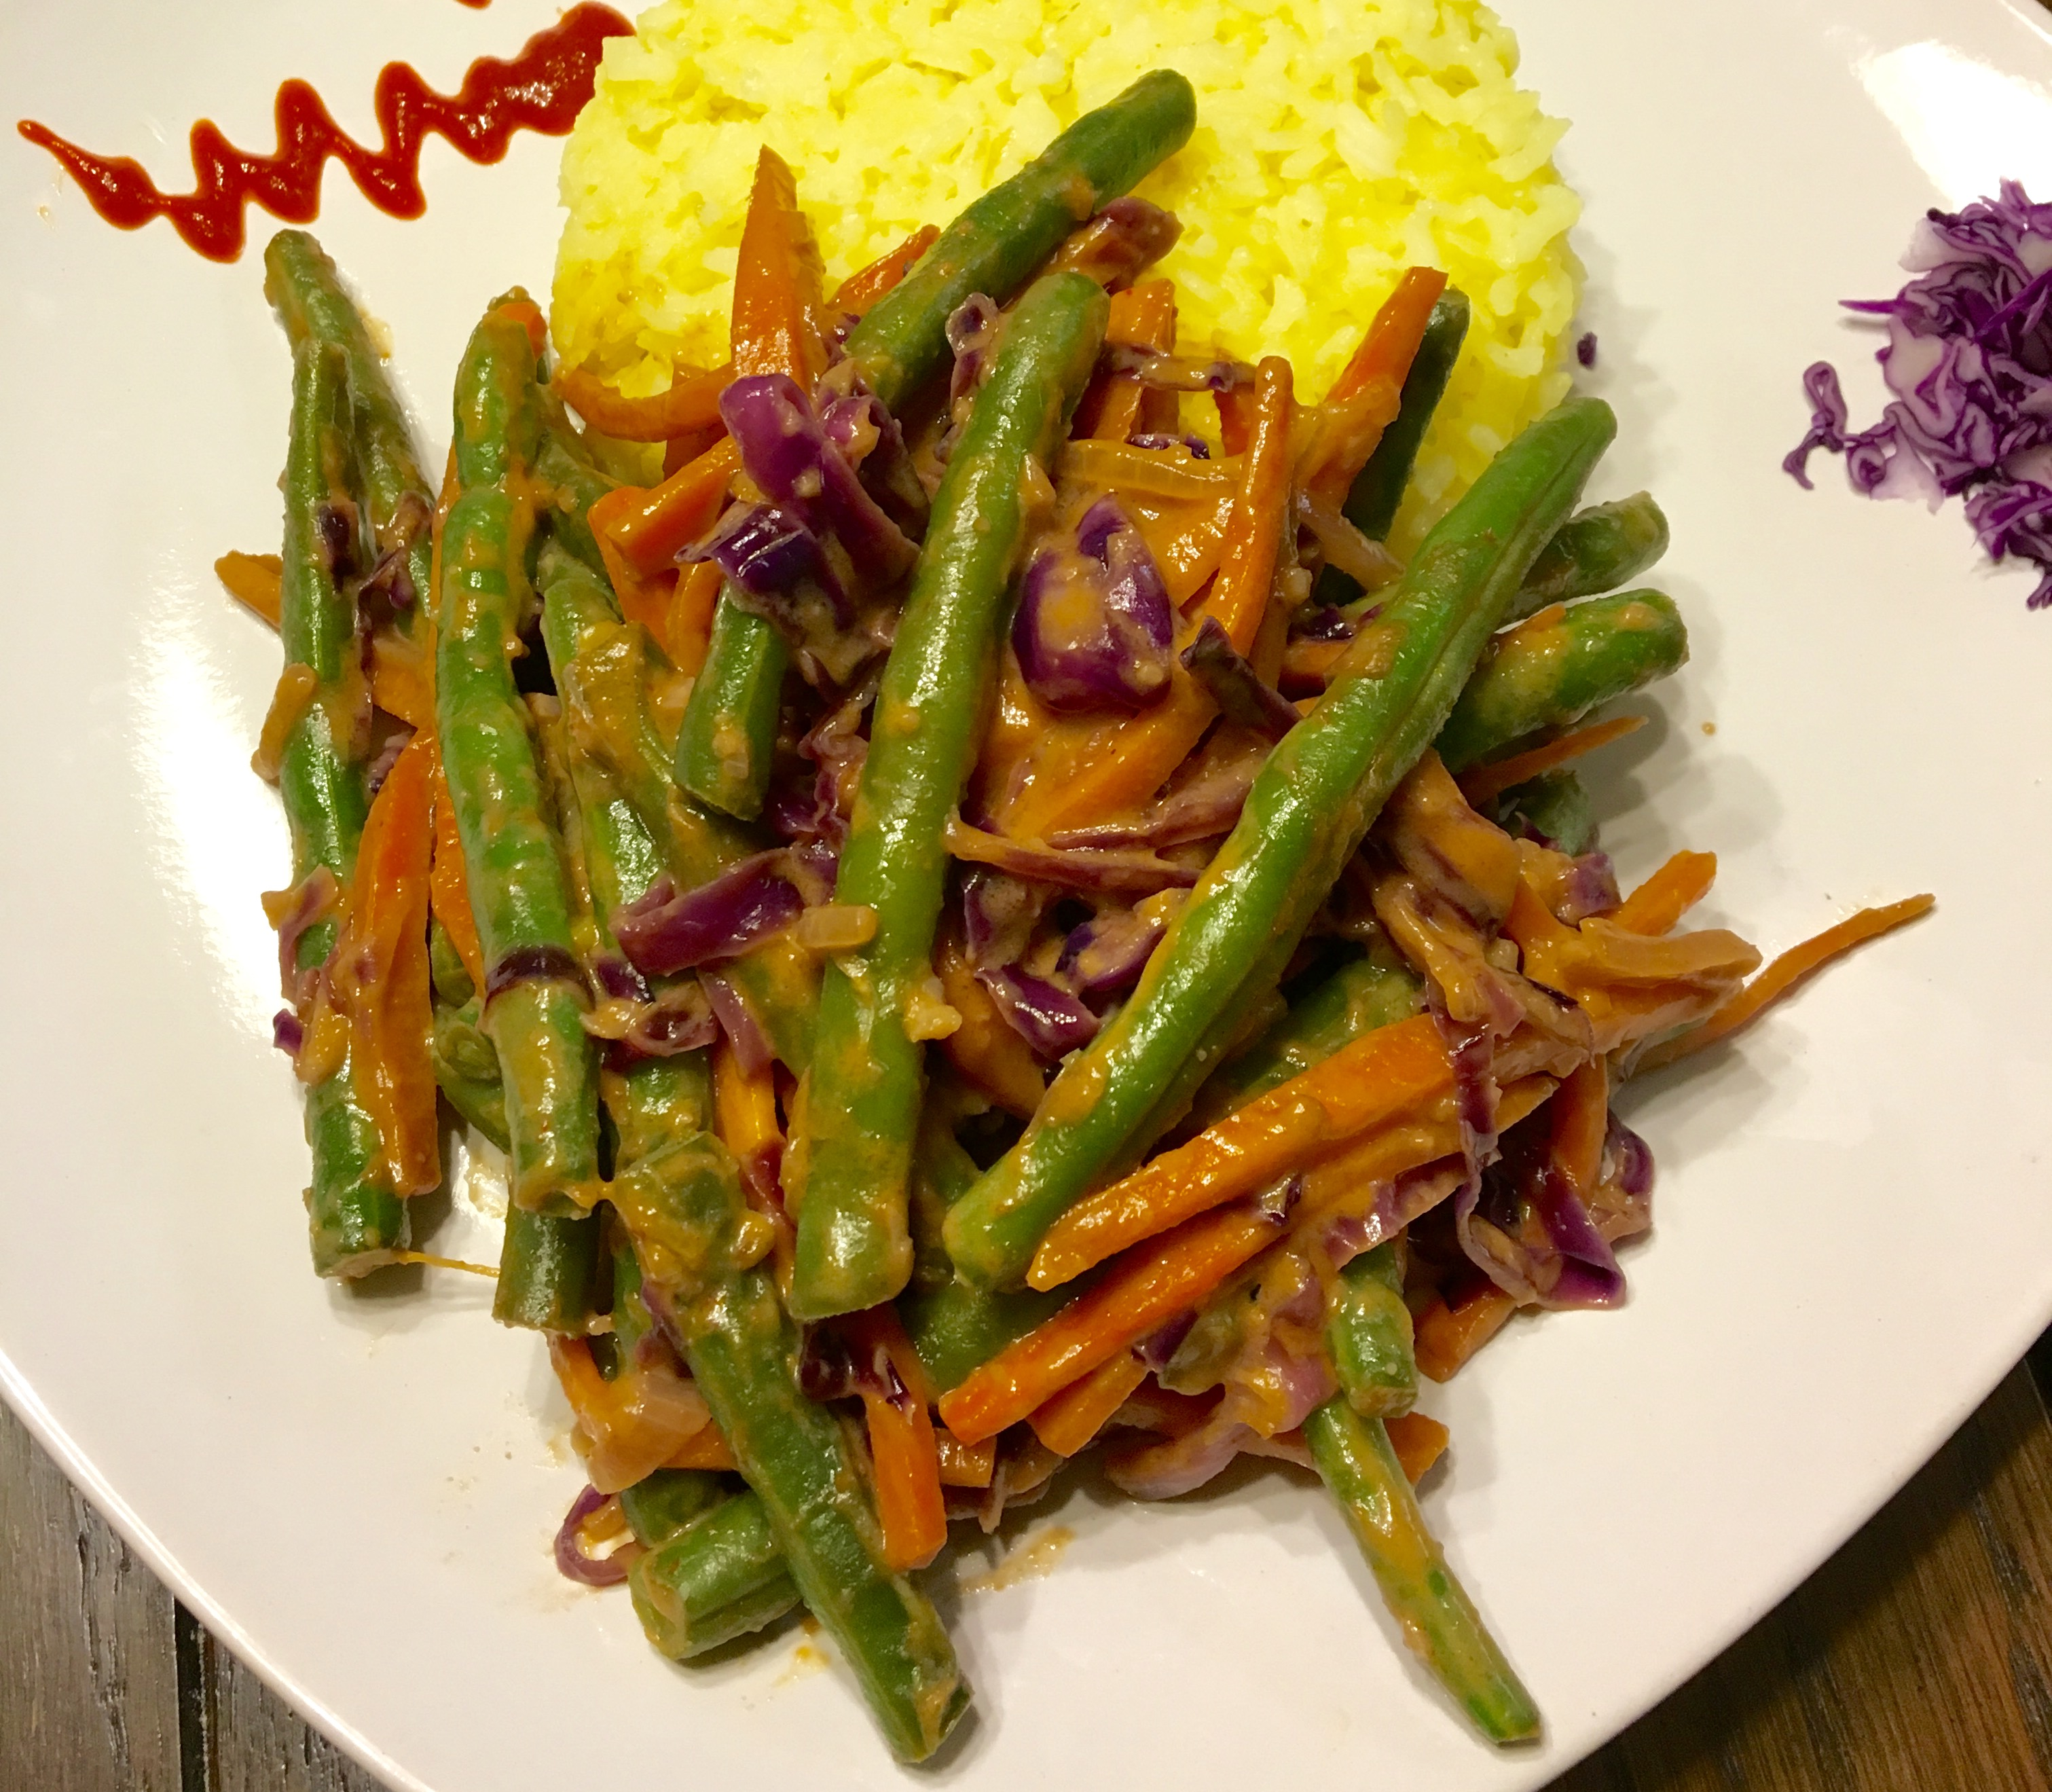 Green Beans with Carrot and Red Cabbage in a Spicy Thai Peanut Sauce